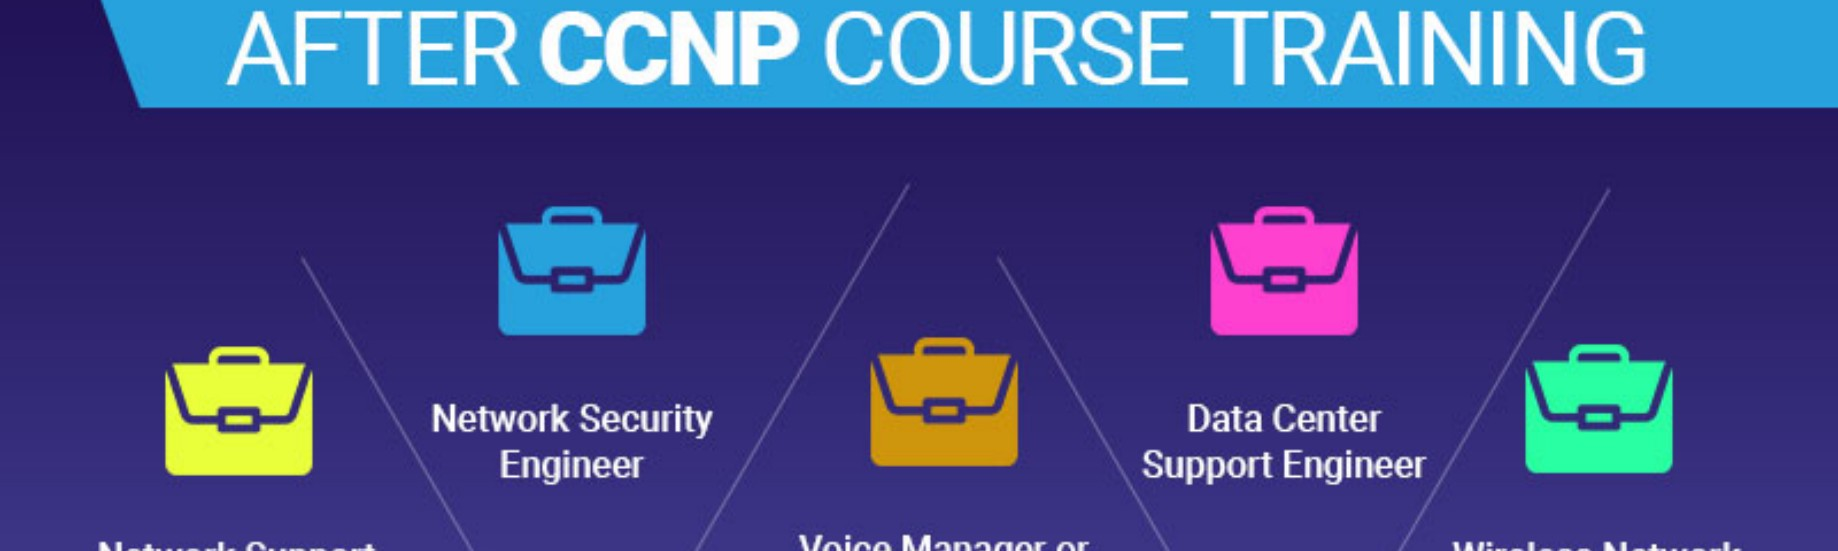 All about CCNP R&S Certification: Overview, Eligibility